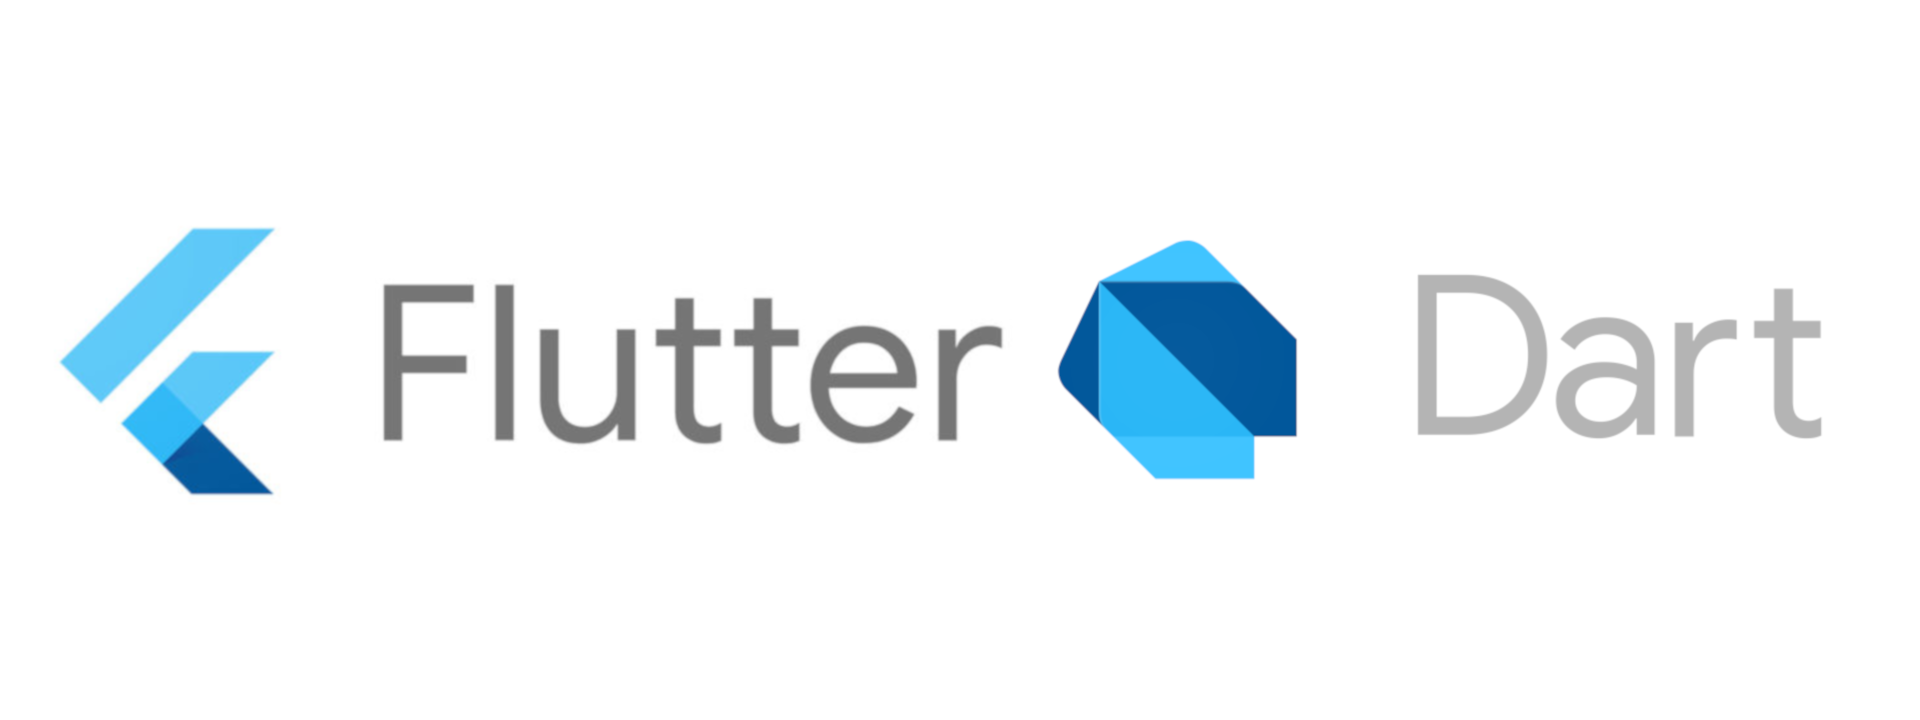 A simplified introduction to Dart and Flutter - freeCodeCamp